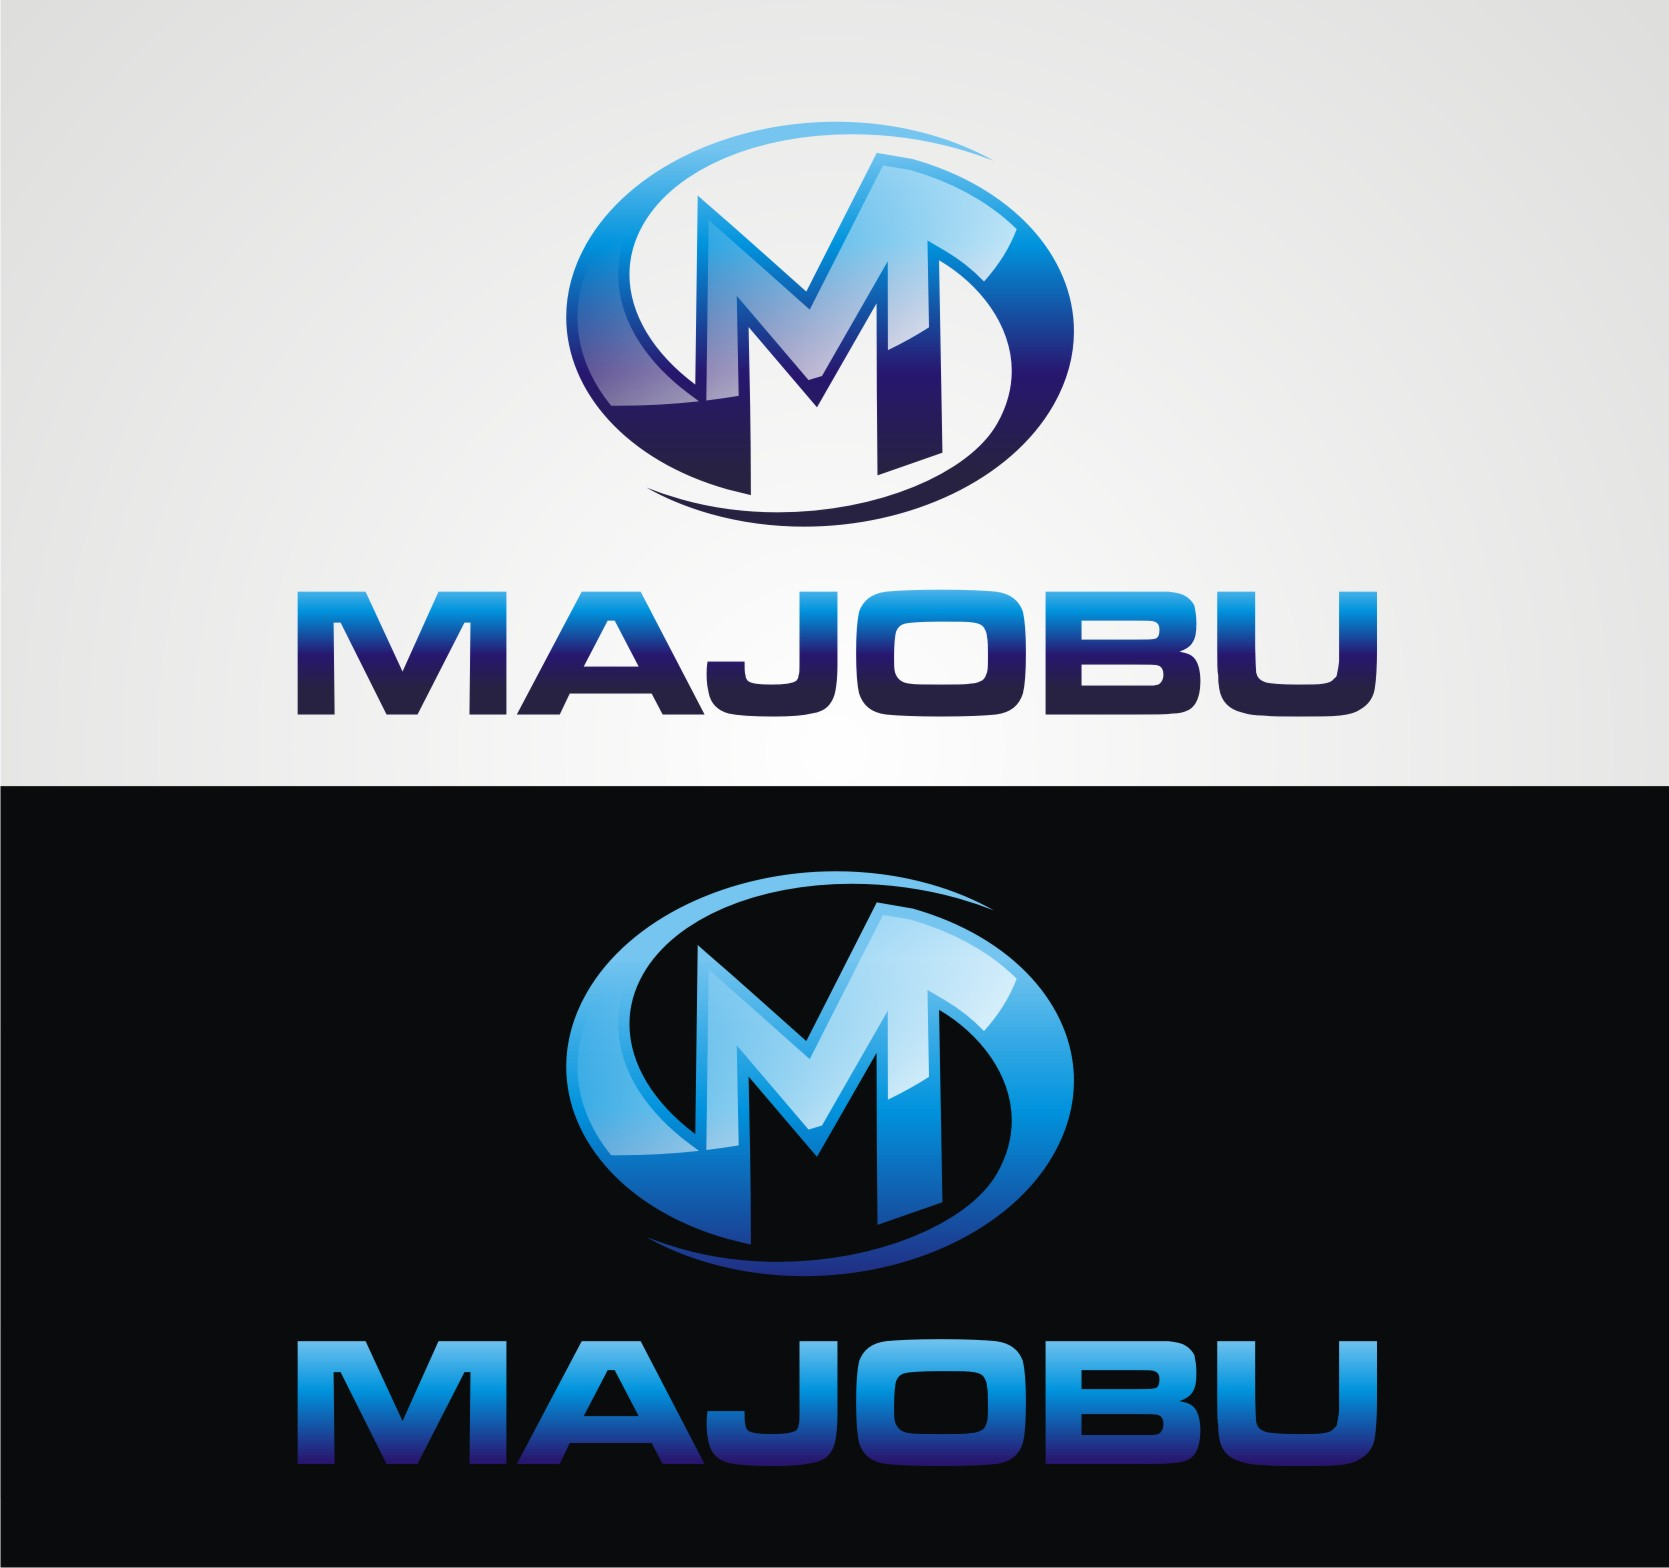 Logo Design by Reivan Ferdinan - Entry No. 45 in the Logo Design Contest Inspiring Logo Design for Majobu.